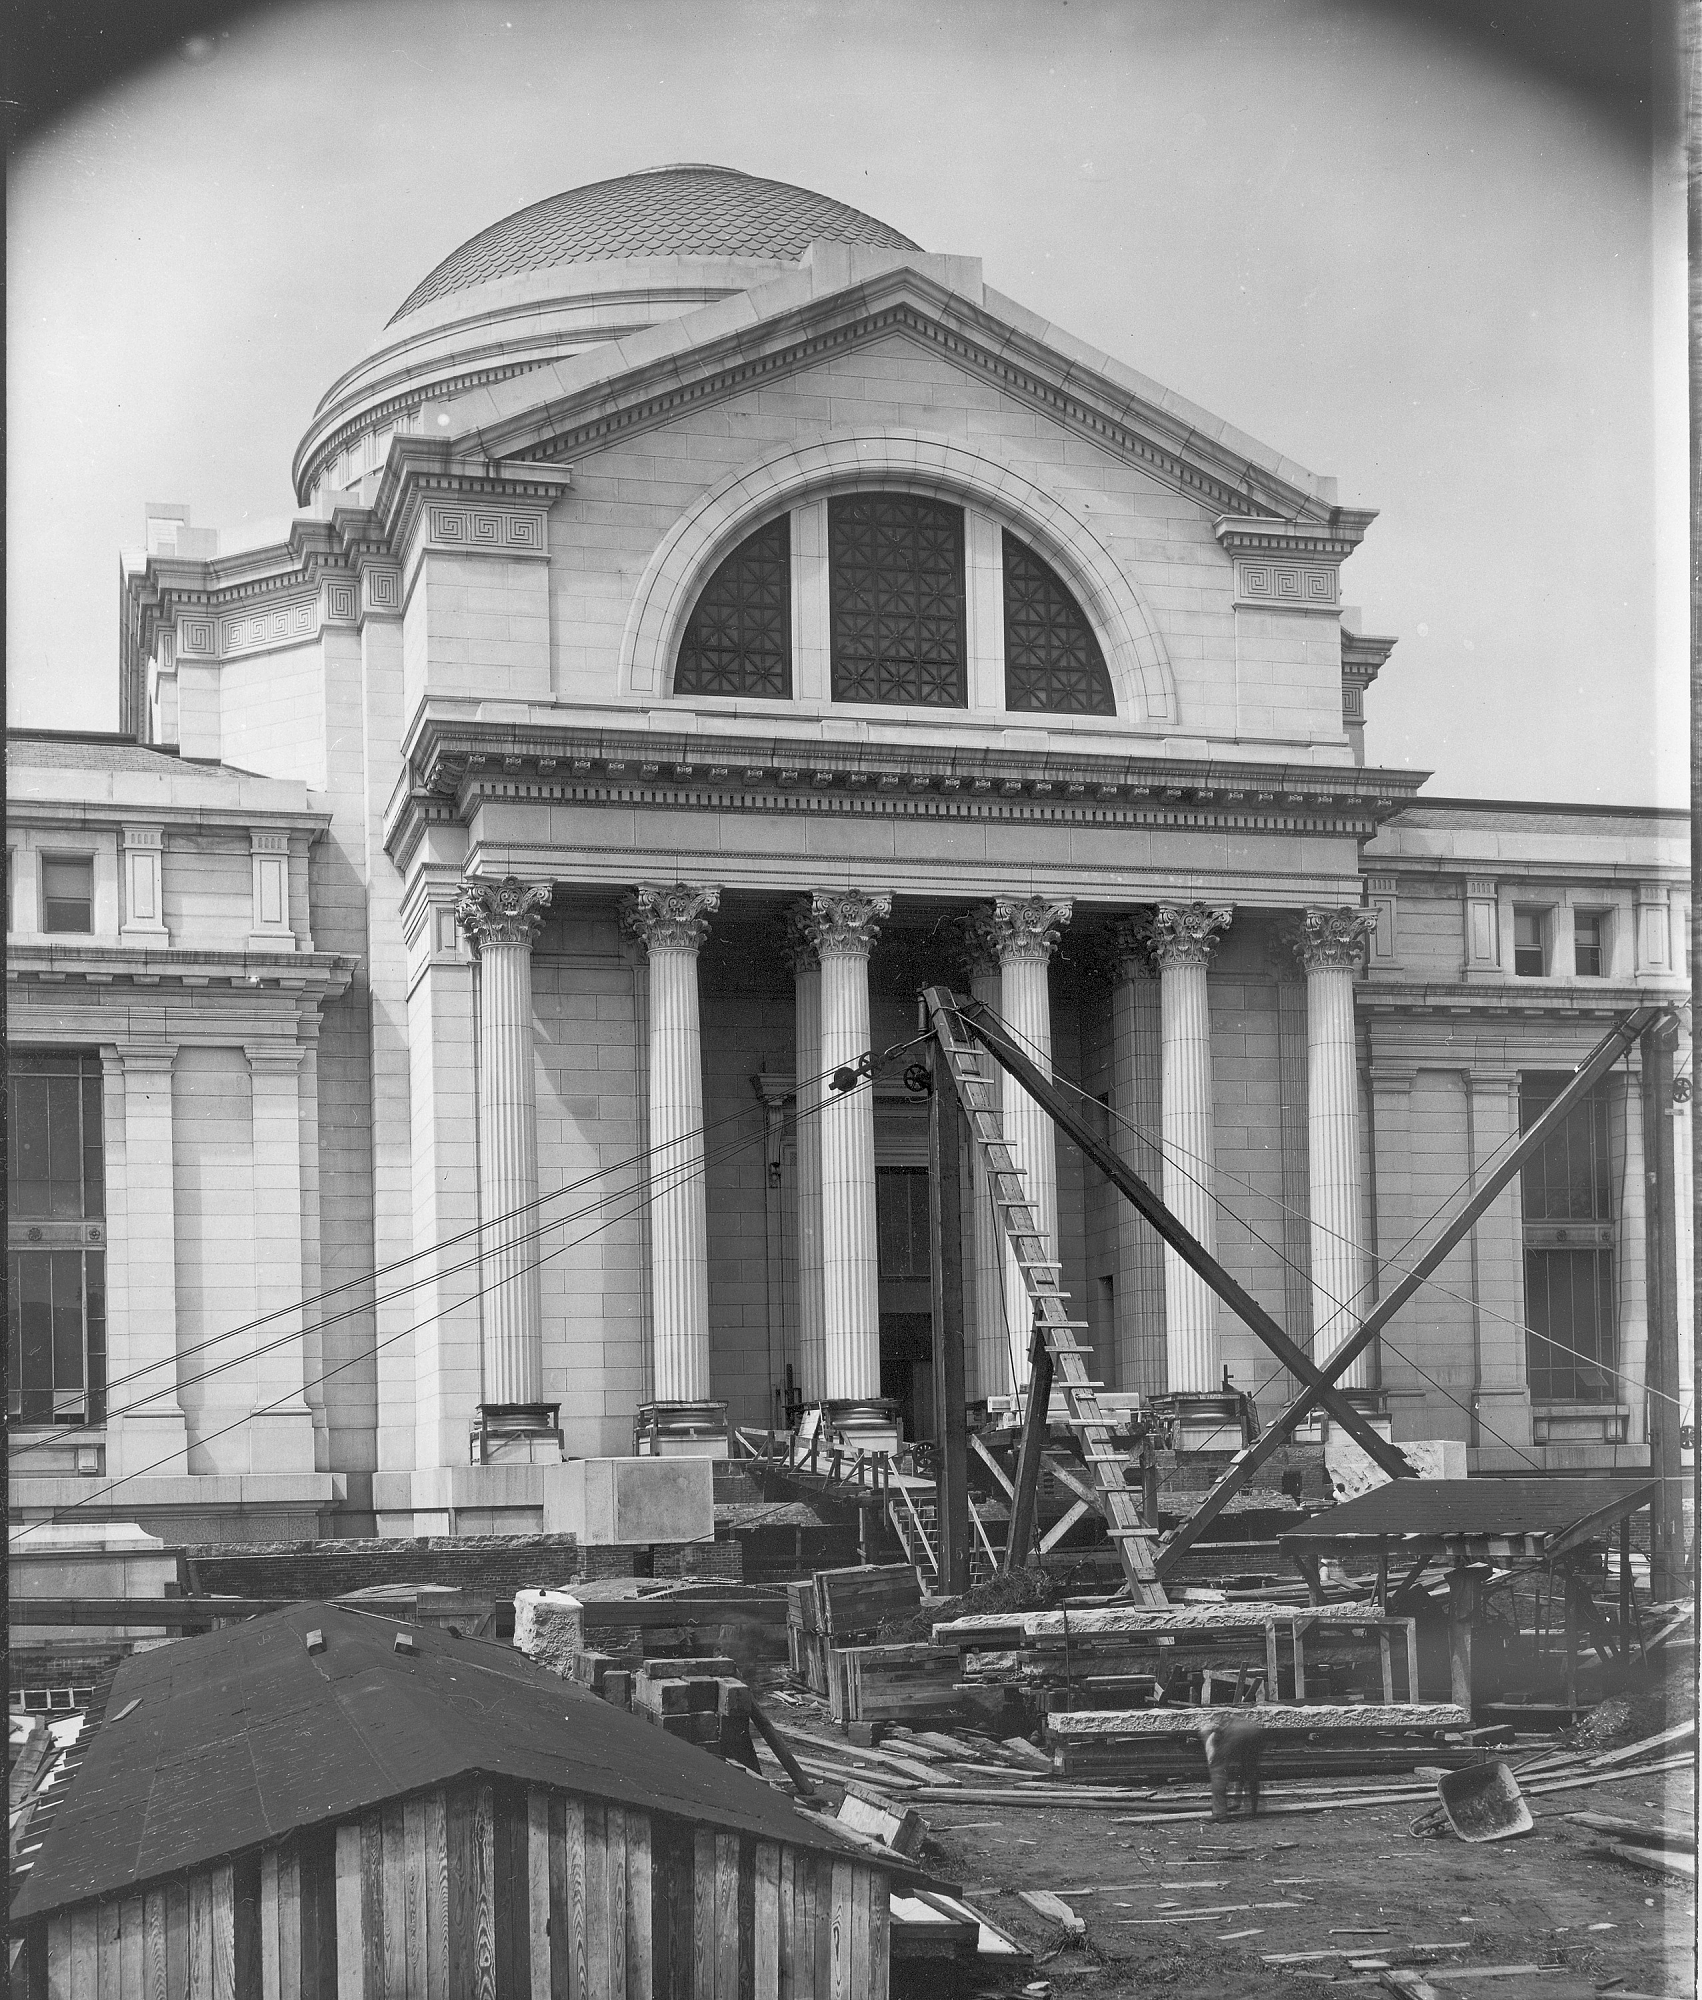 B&W image of the Natural History Building, with construction equipment in front of it.